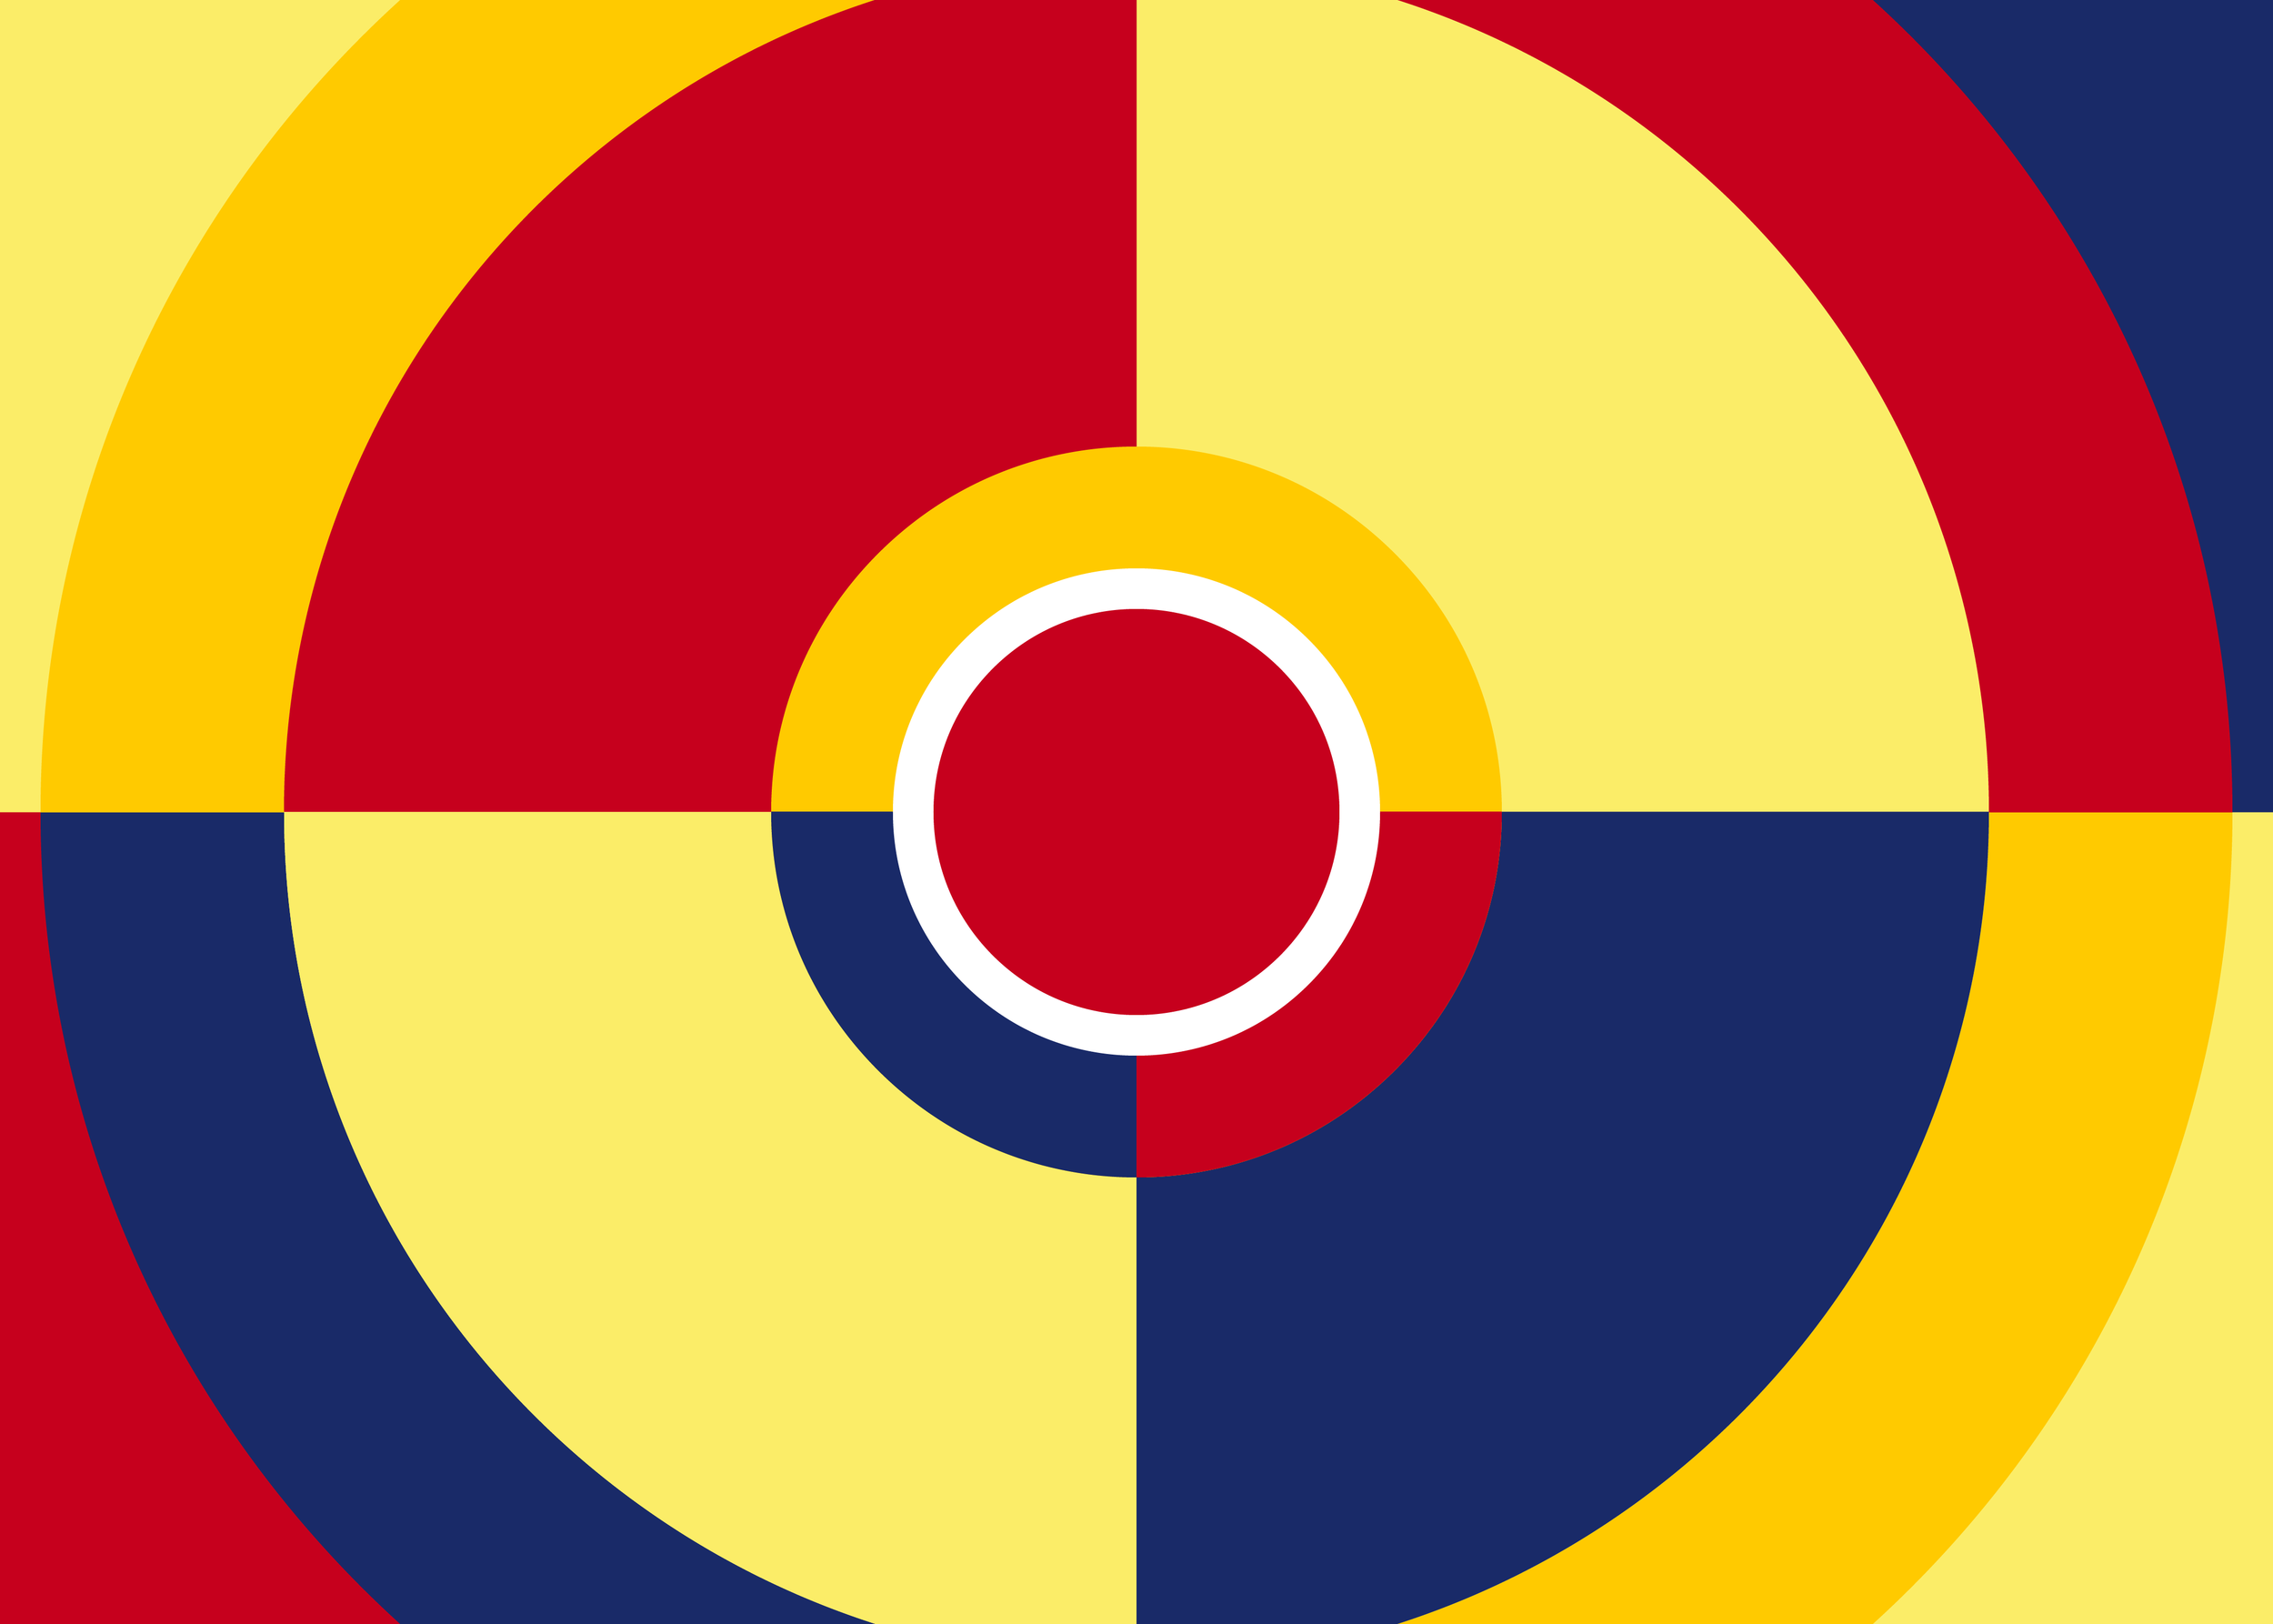 Colombia-Geometric-World-Cup-Football-Badge-01-Logo-Design-Freelance-Kent.png